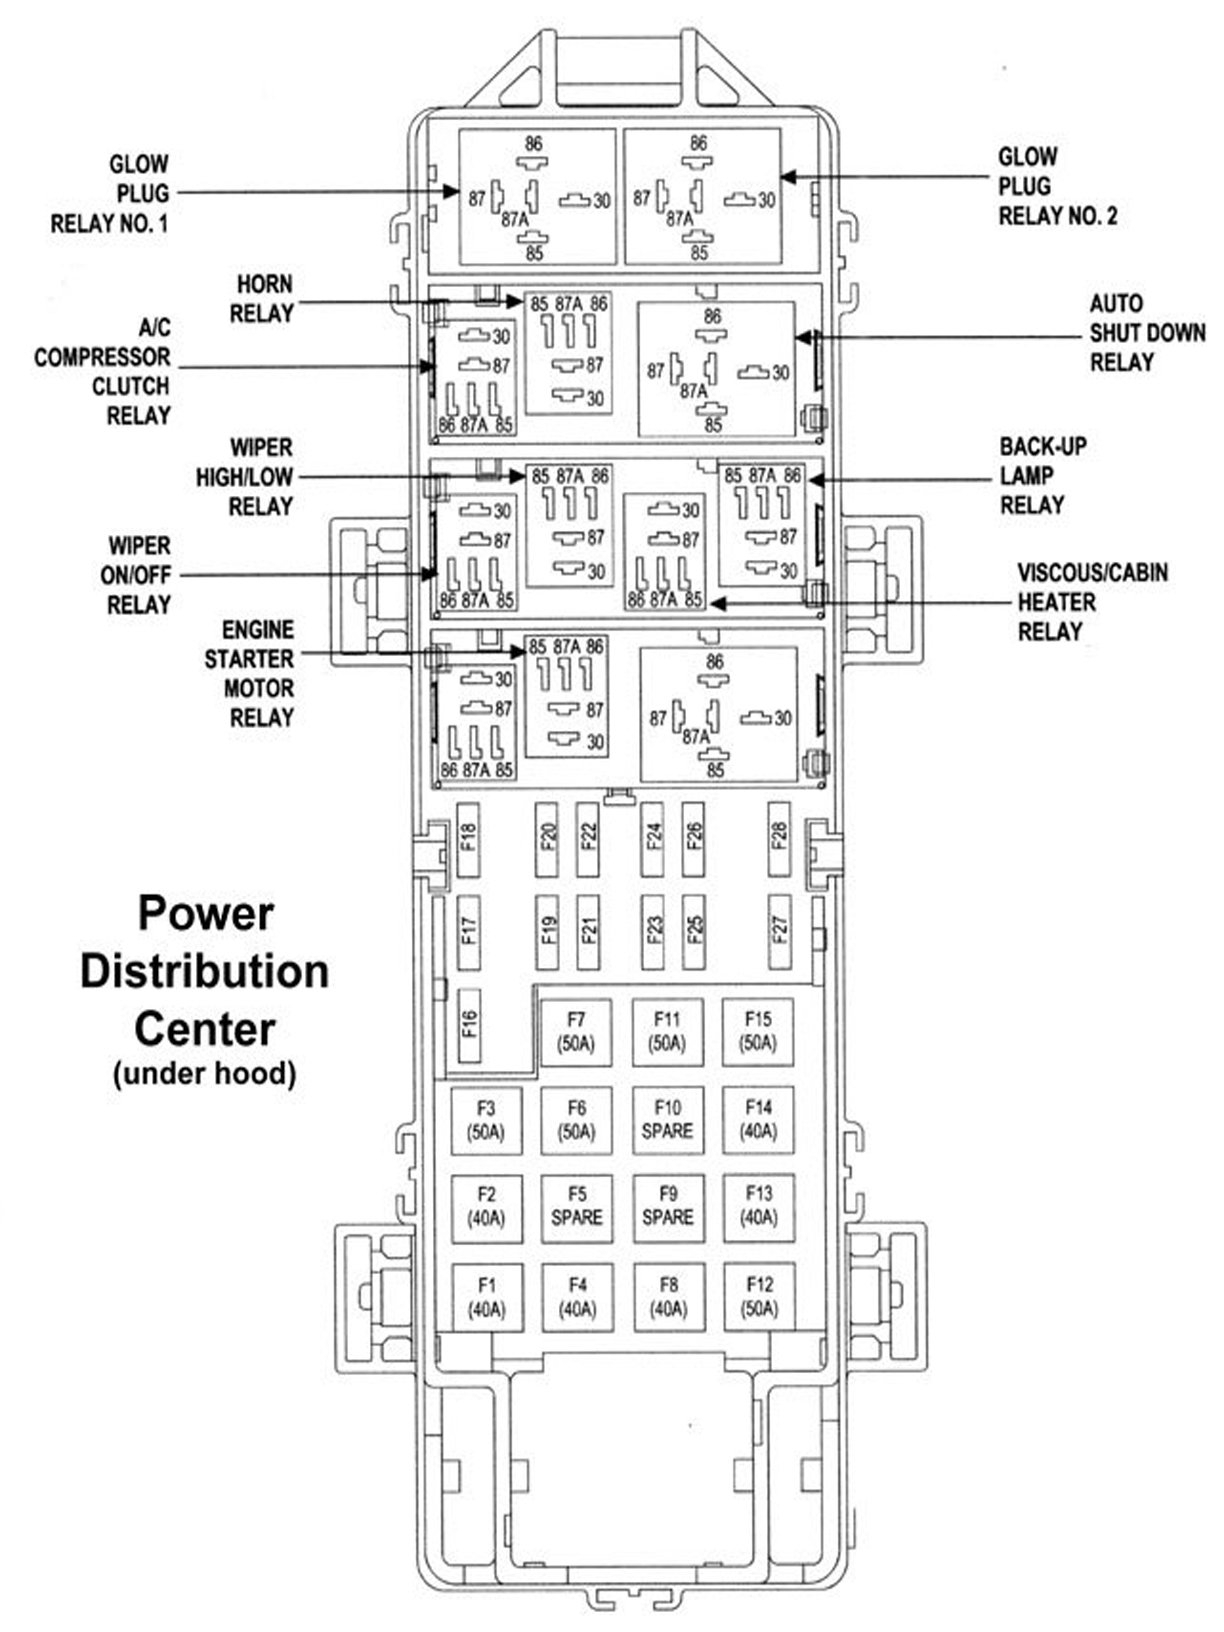 jeep grand cherokee wj 1999 to 2004 fuse box diagram cherokeeforum intended for 1998 jeep grand cherokee parts diagram jeep grand cherokee wj 1999 to 2004 fuse box diagram 2004 Jeep Fuse Box Diagram at soozxer.org